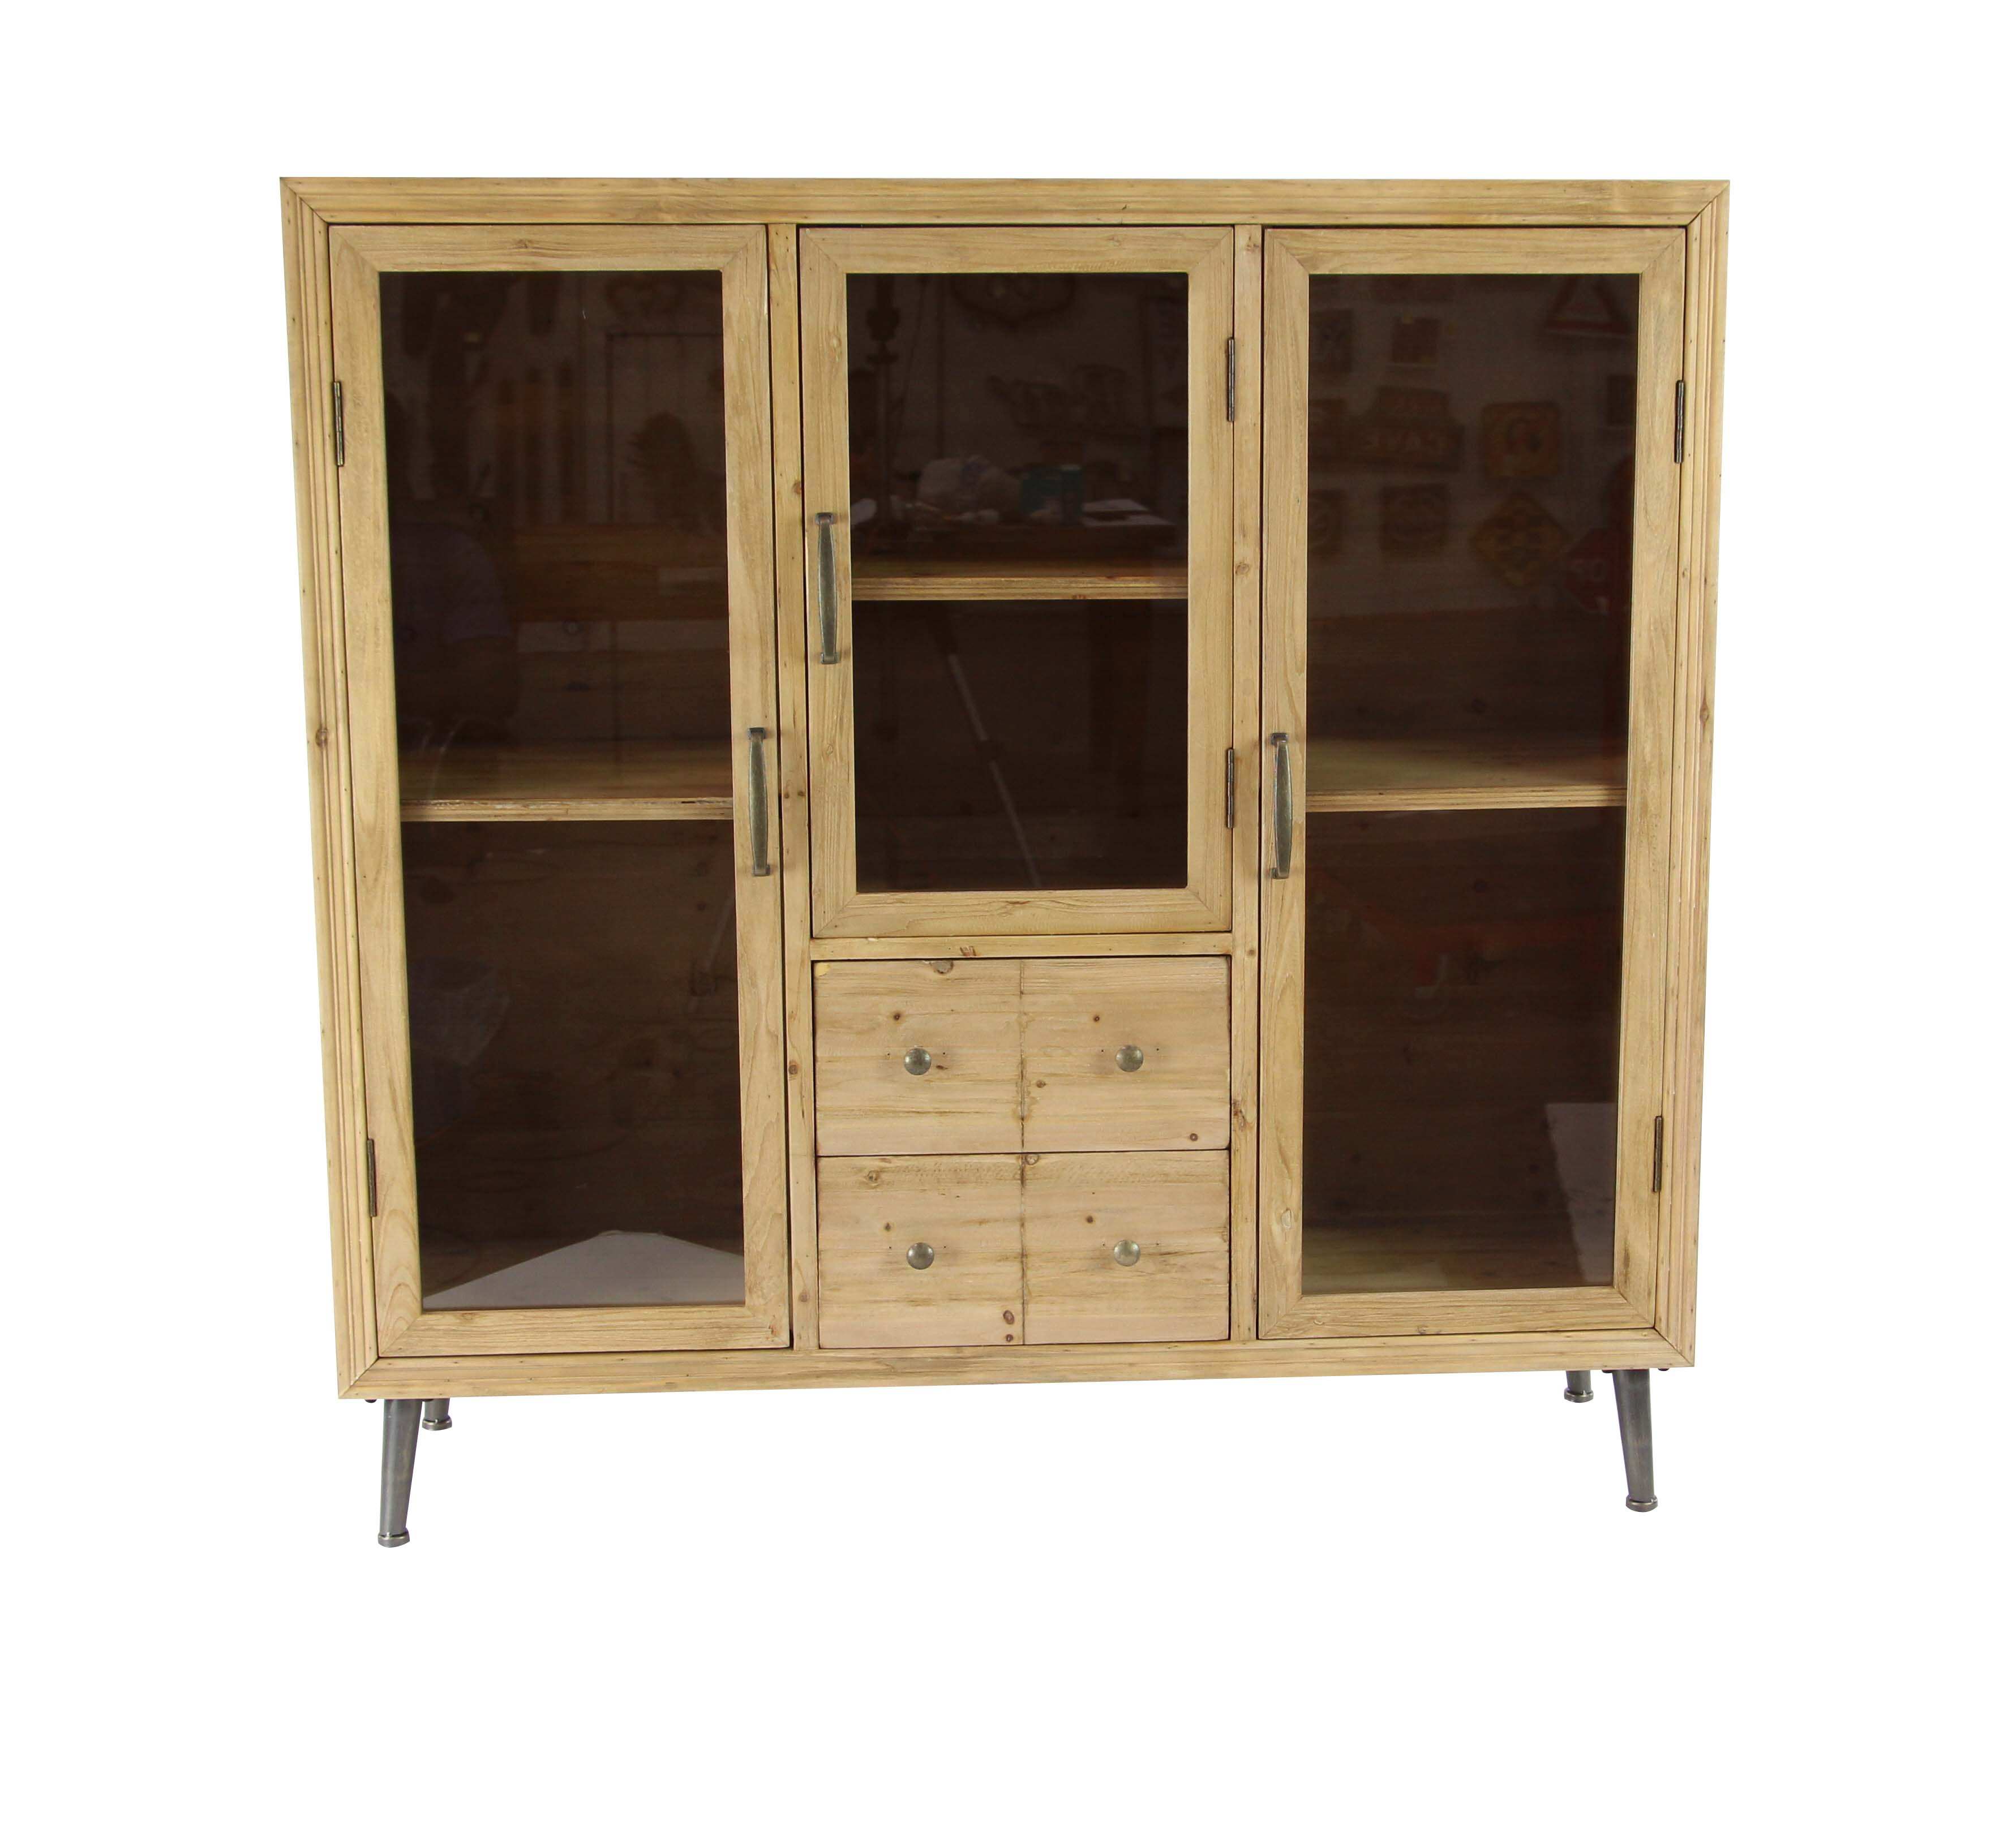 Decmode Rustic Wood And Glass Multipurpose Cabinet, Light Brown